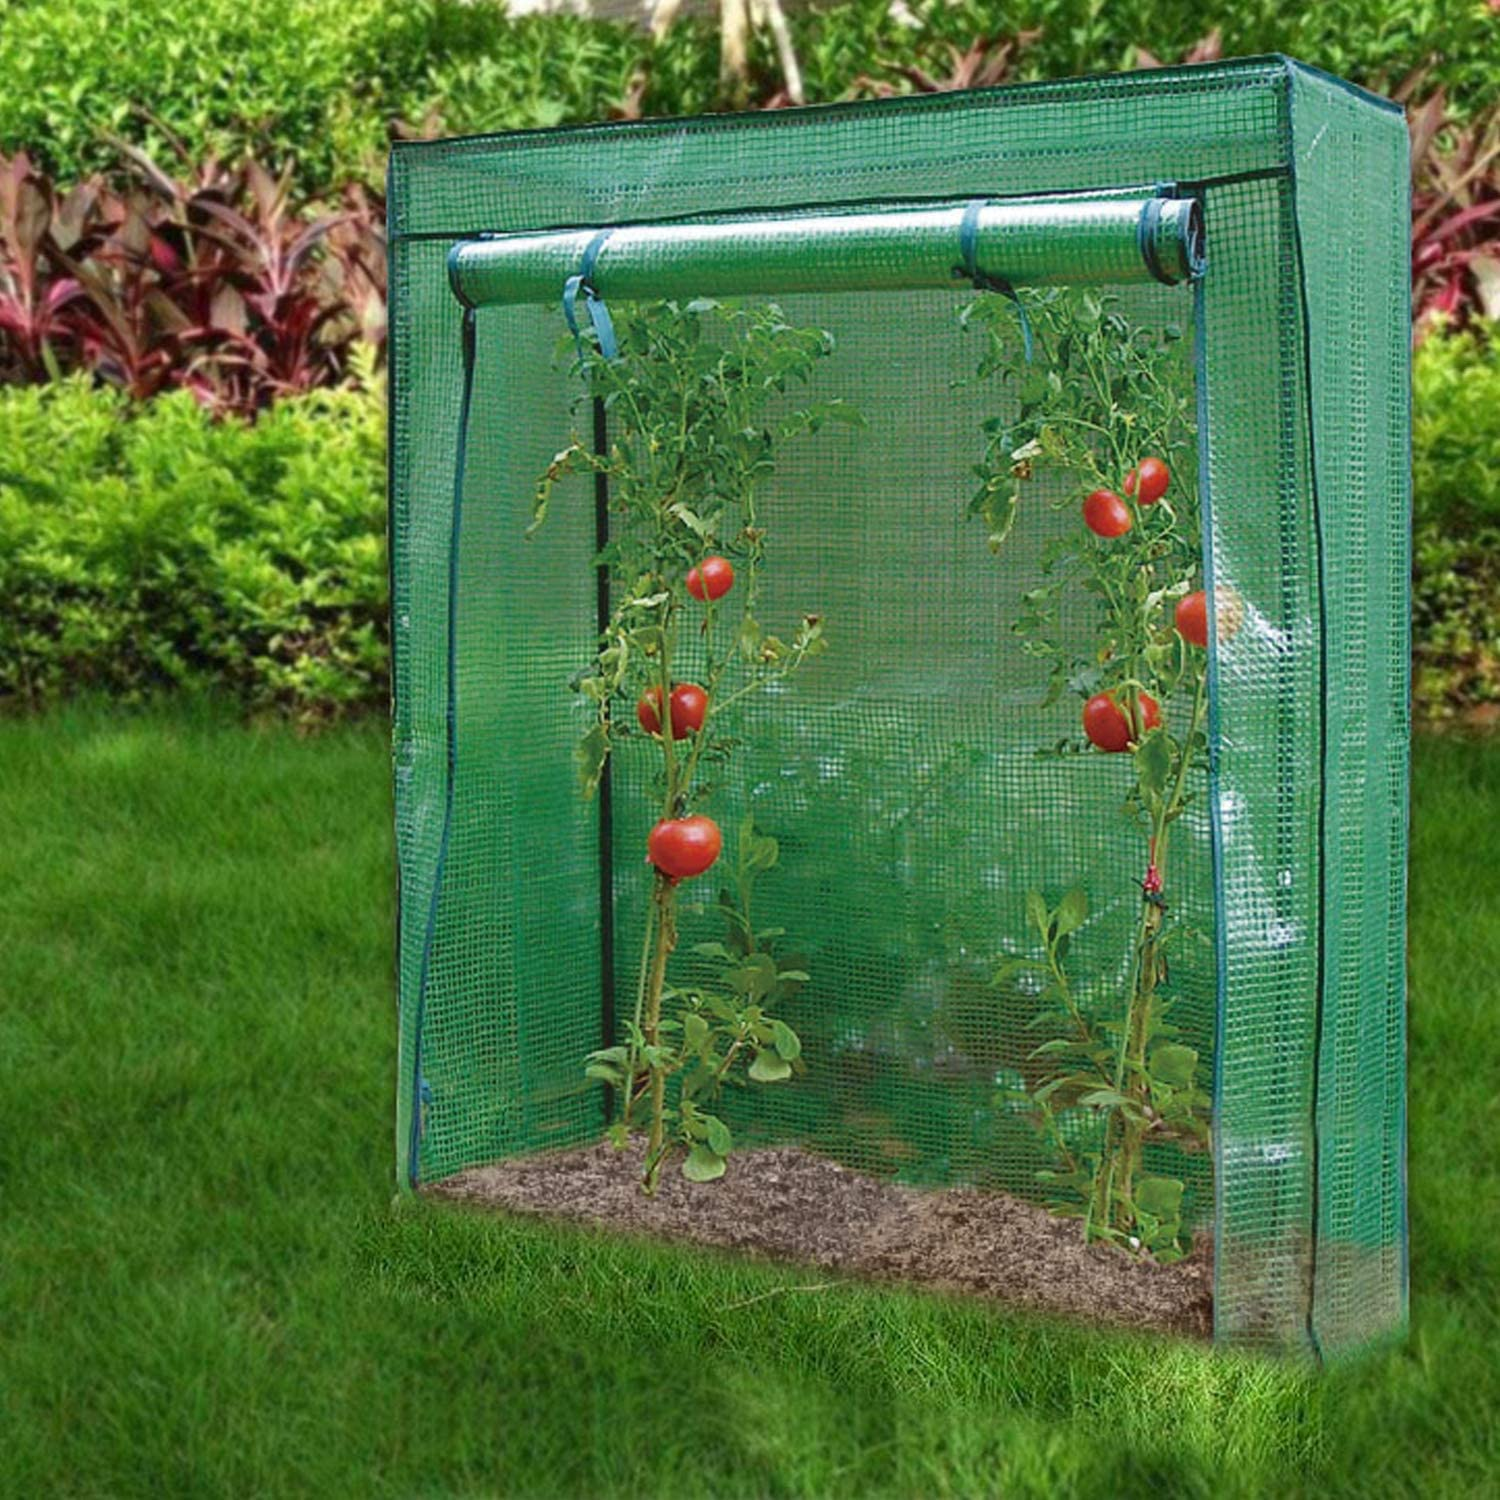 Green Janoon Tomato Greenhouse Frame and Reinforced PE Weather Cover Garden Vegetables Grow and Cultivation